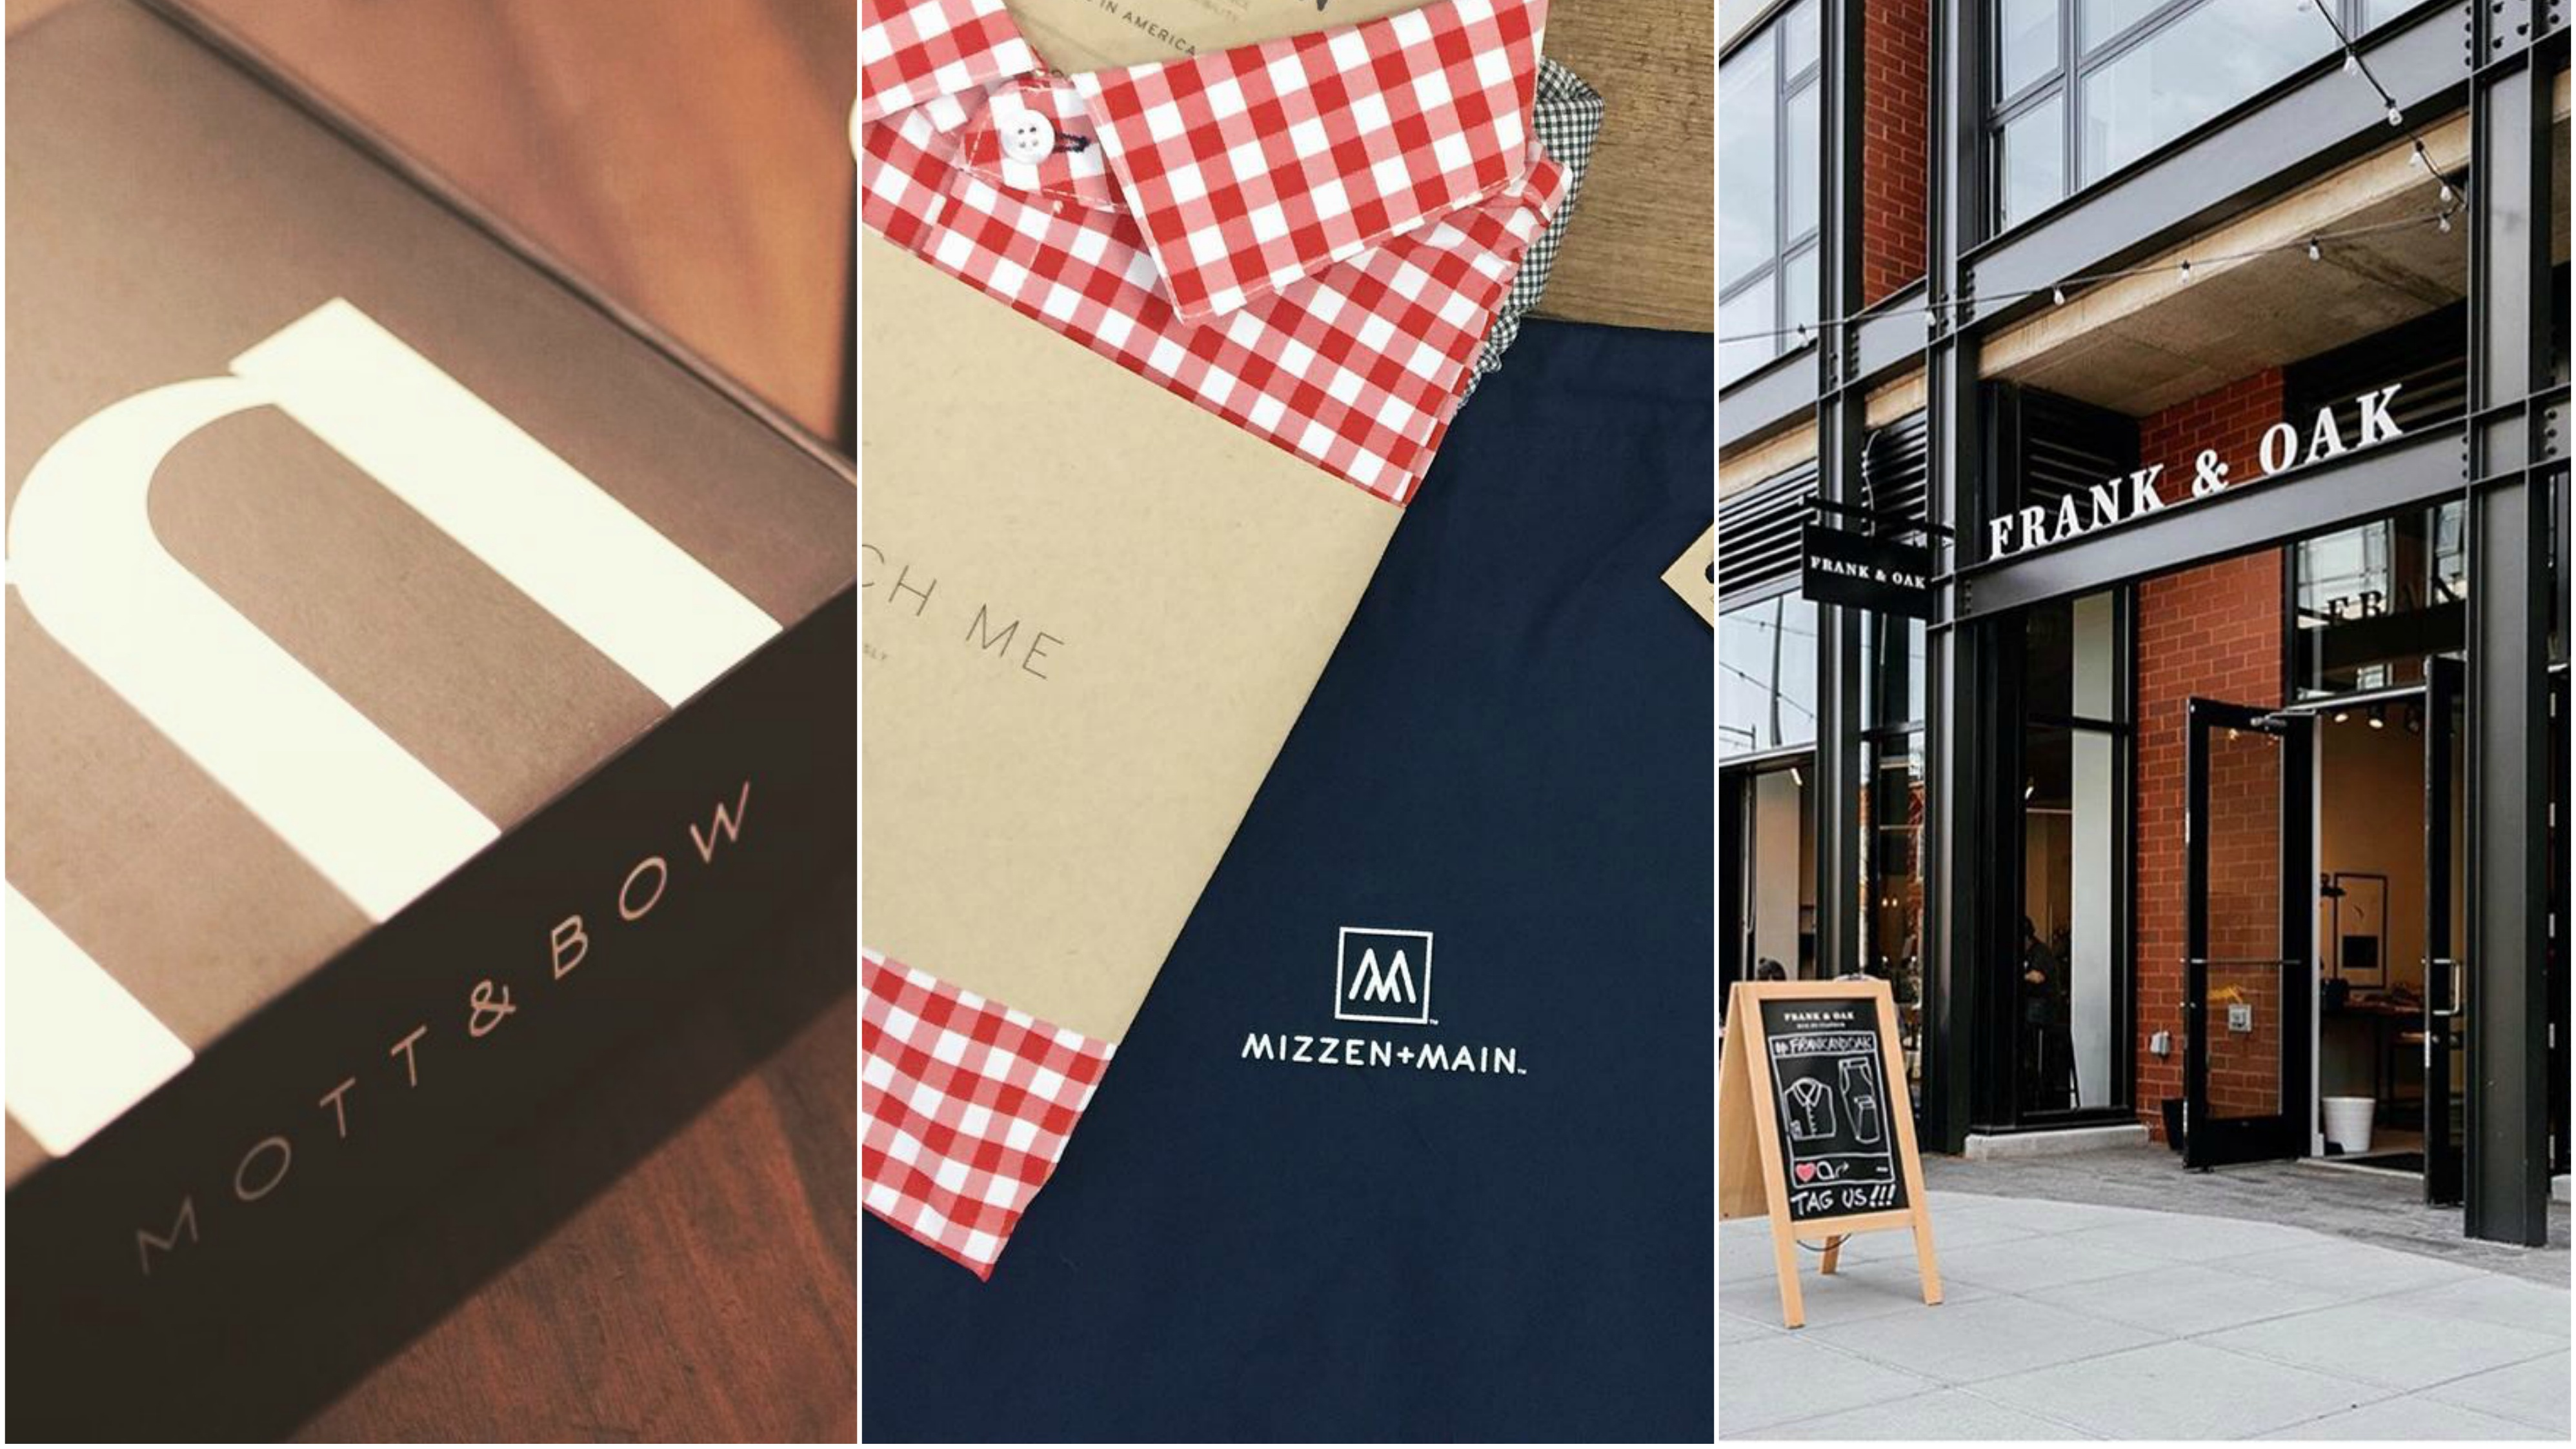 There are practical reasons so many hipster businesses follow the